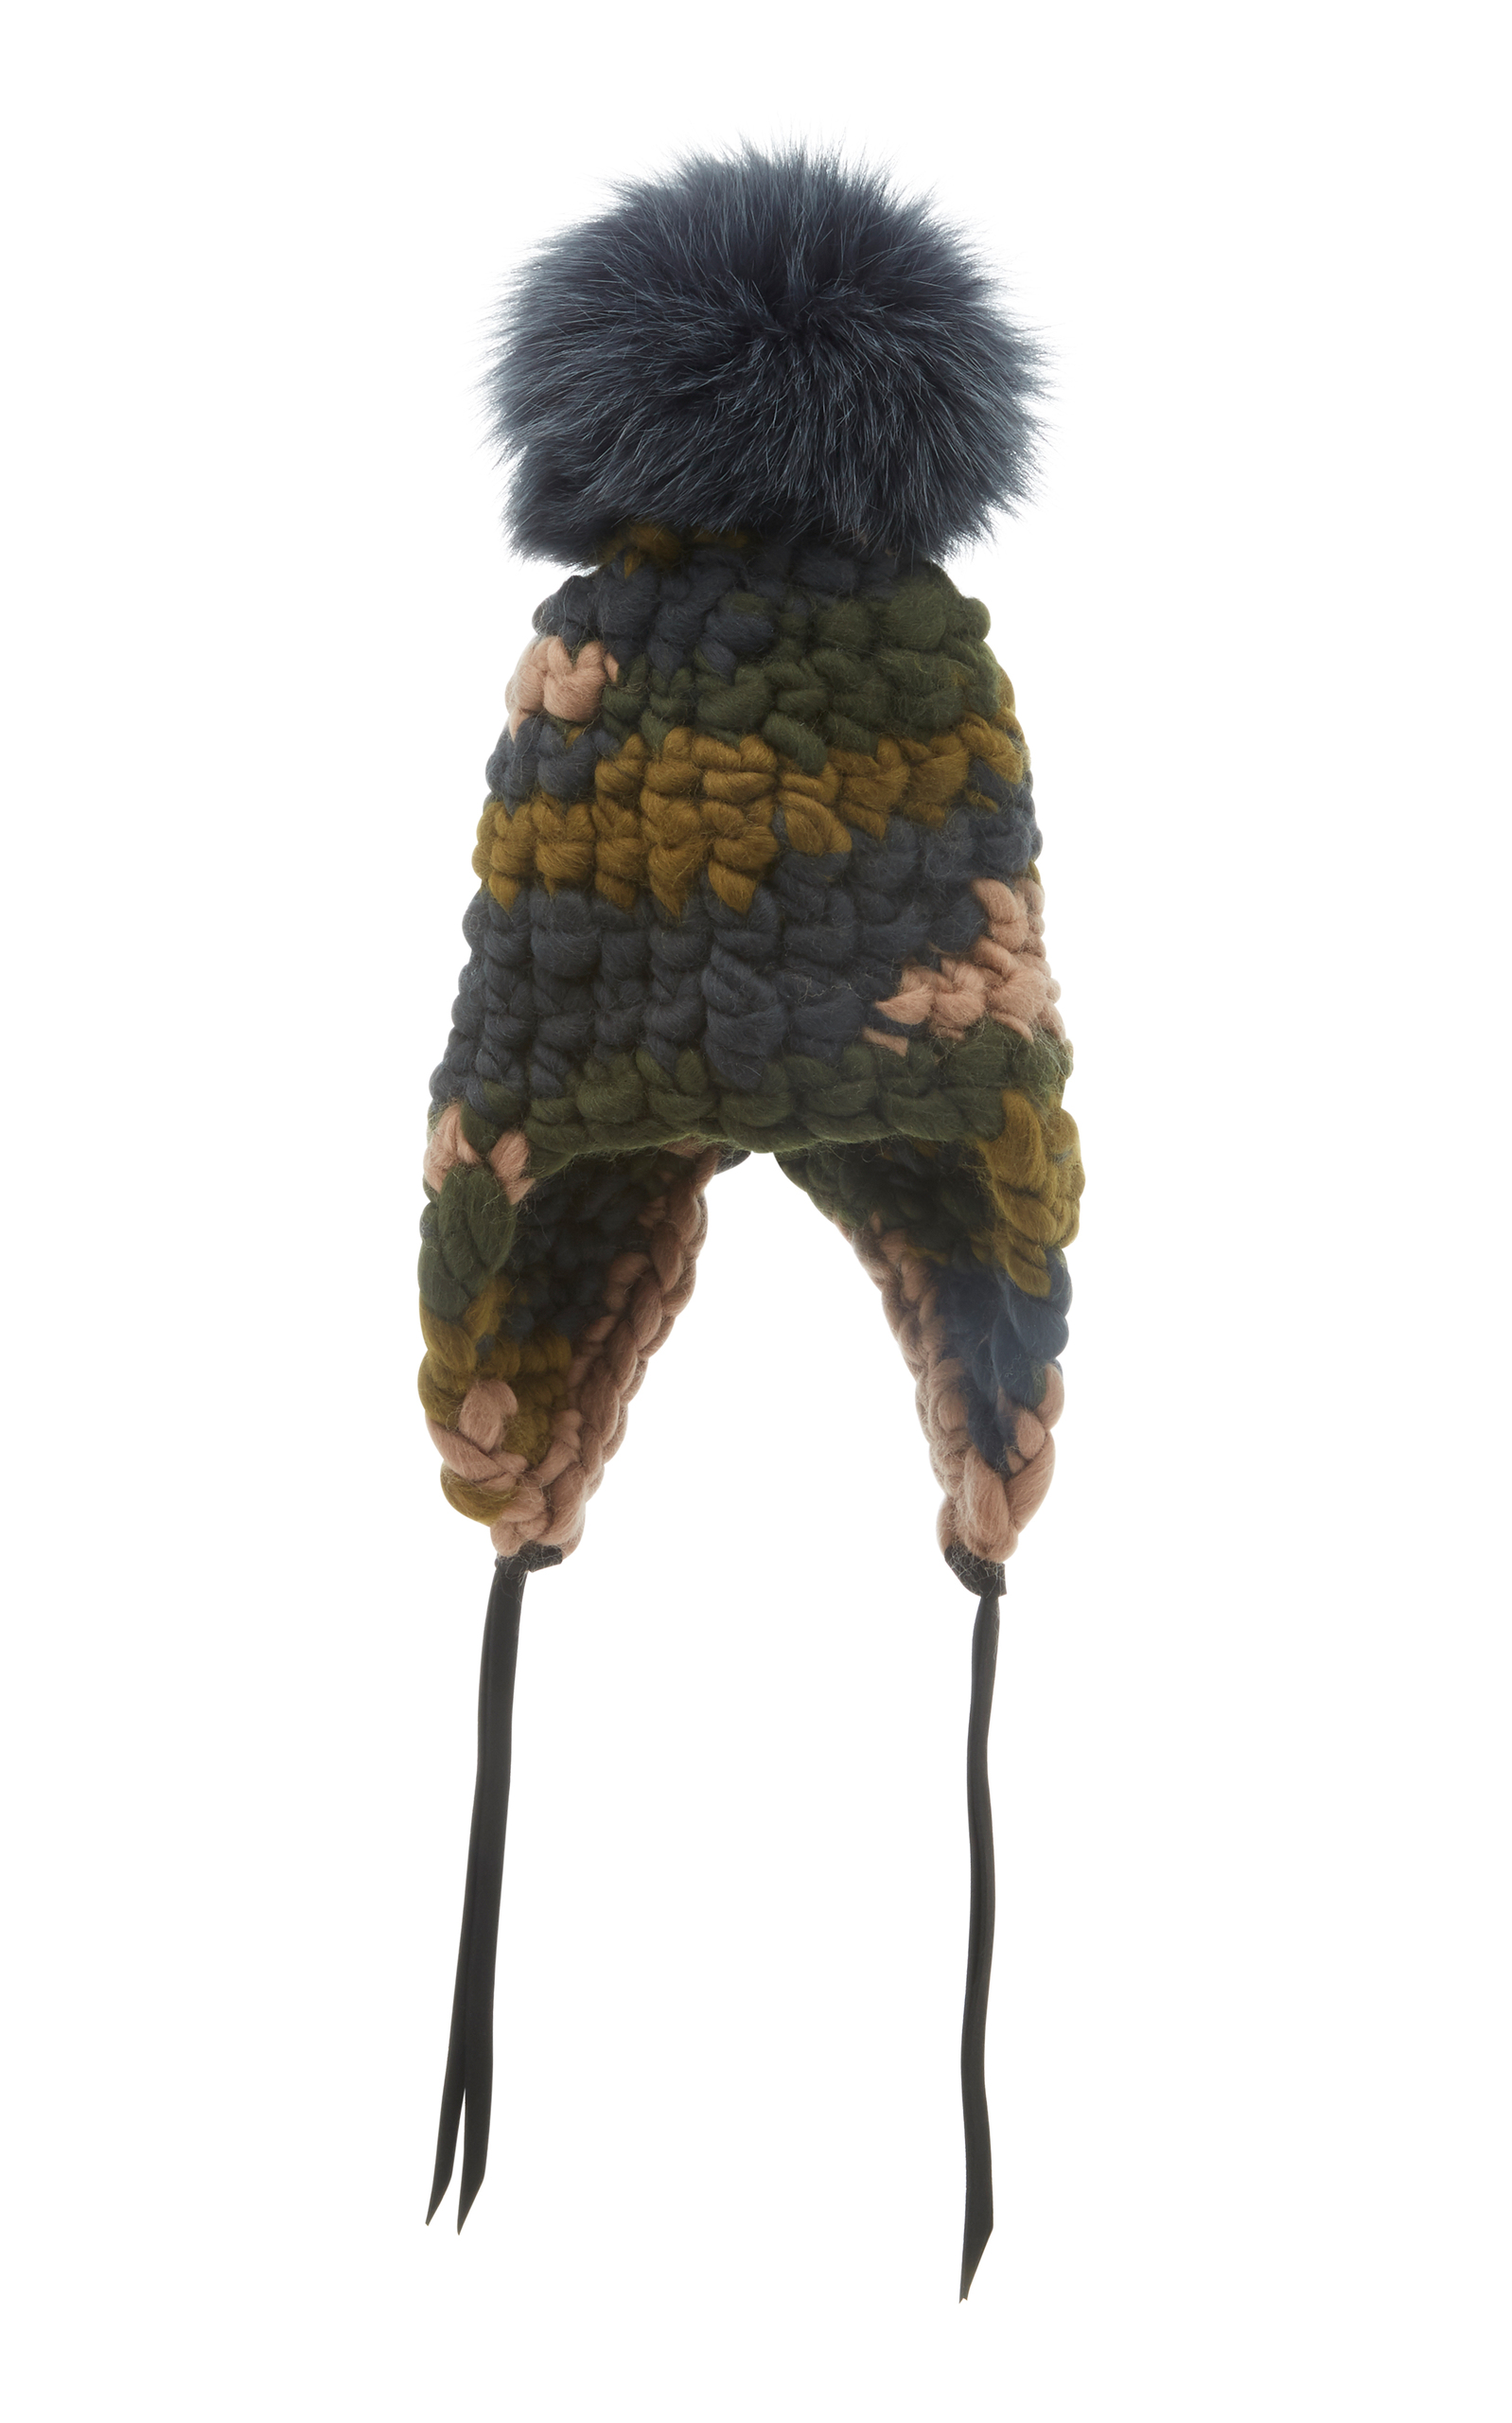 MISCHA LAMPERT CHILDREN'S MERINO WOOL BEANIE